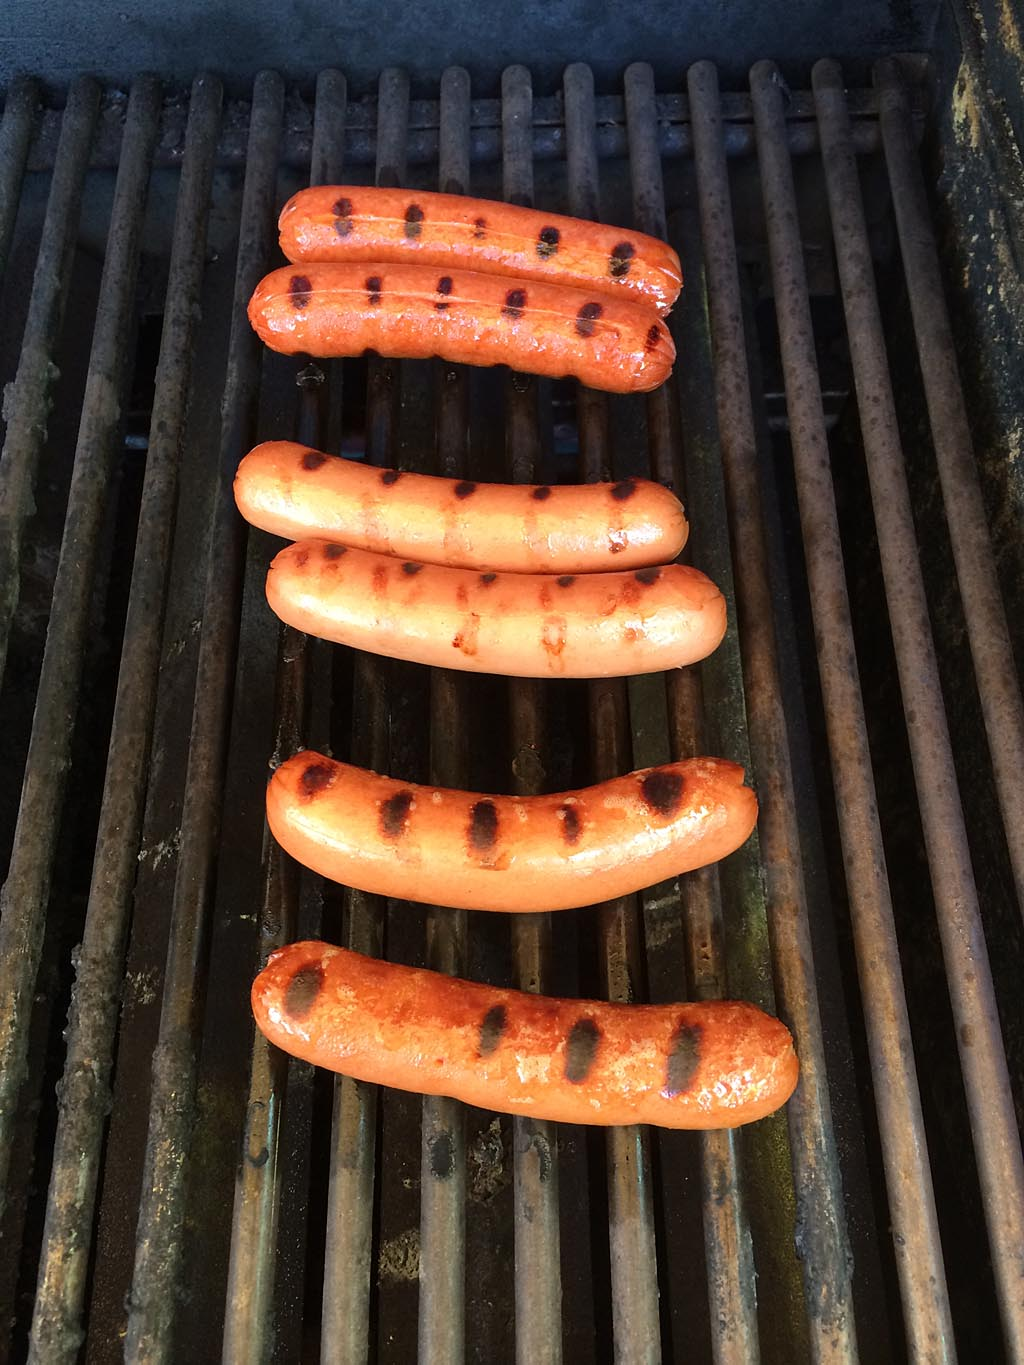 Grilling the hot dogs